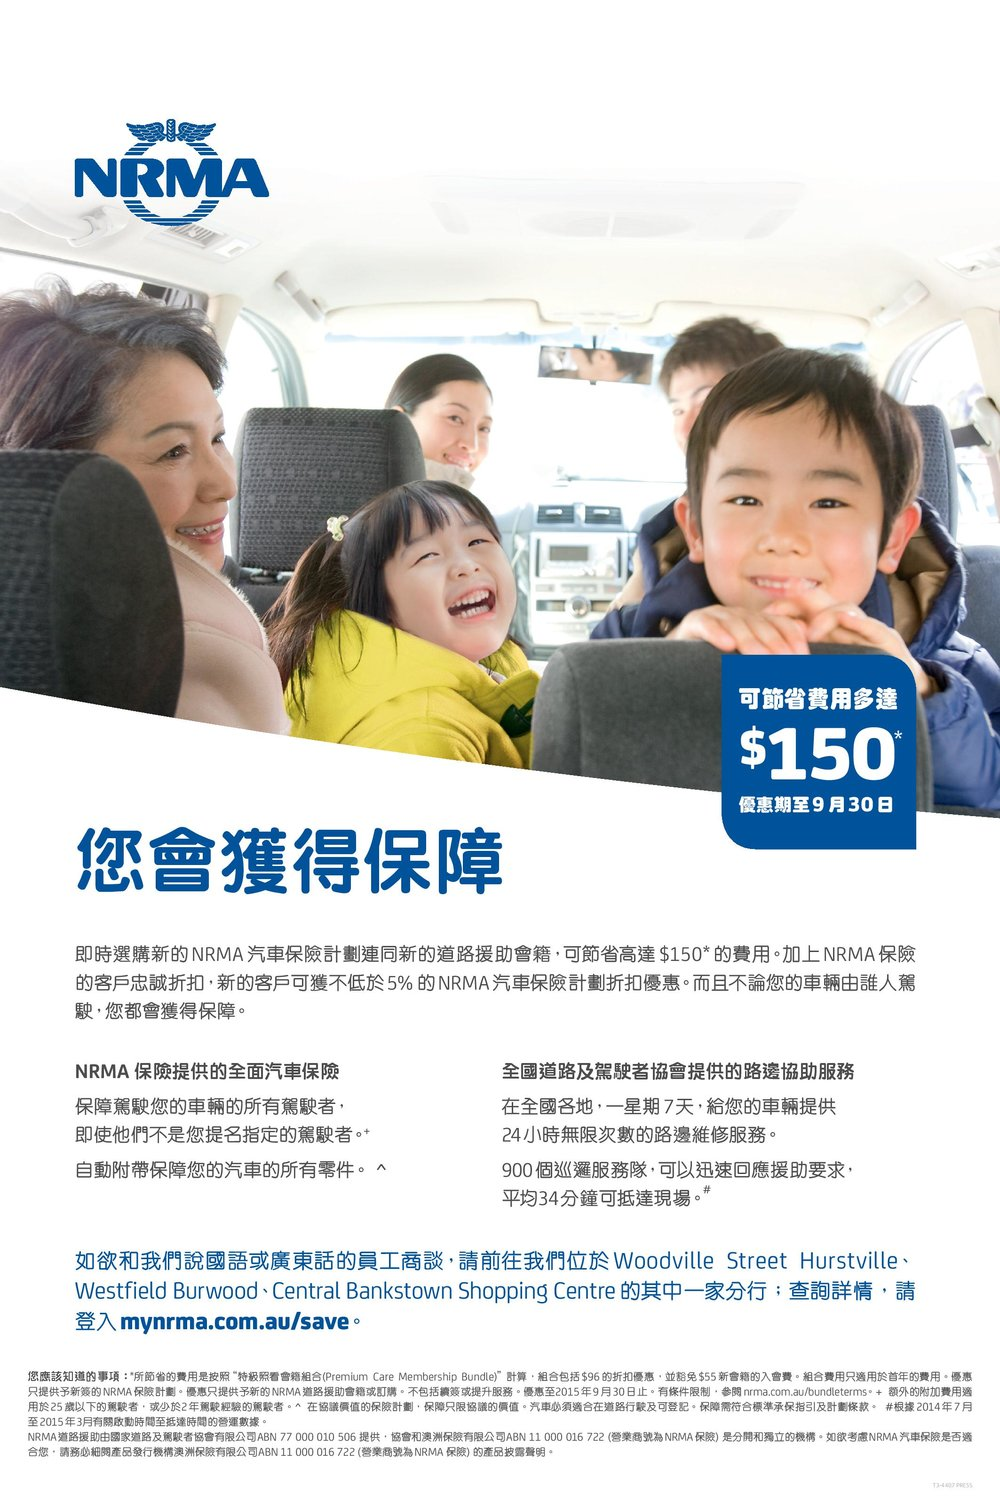 NRMA Bundle_Chinese Press_540x360-page-001.jpg